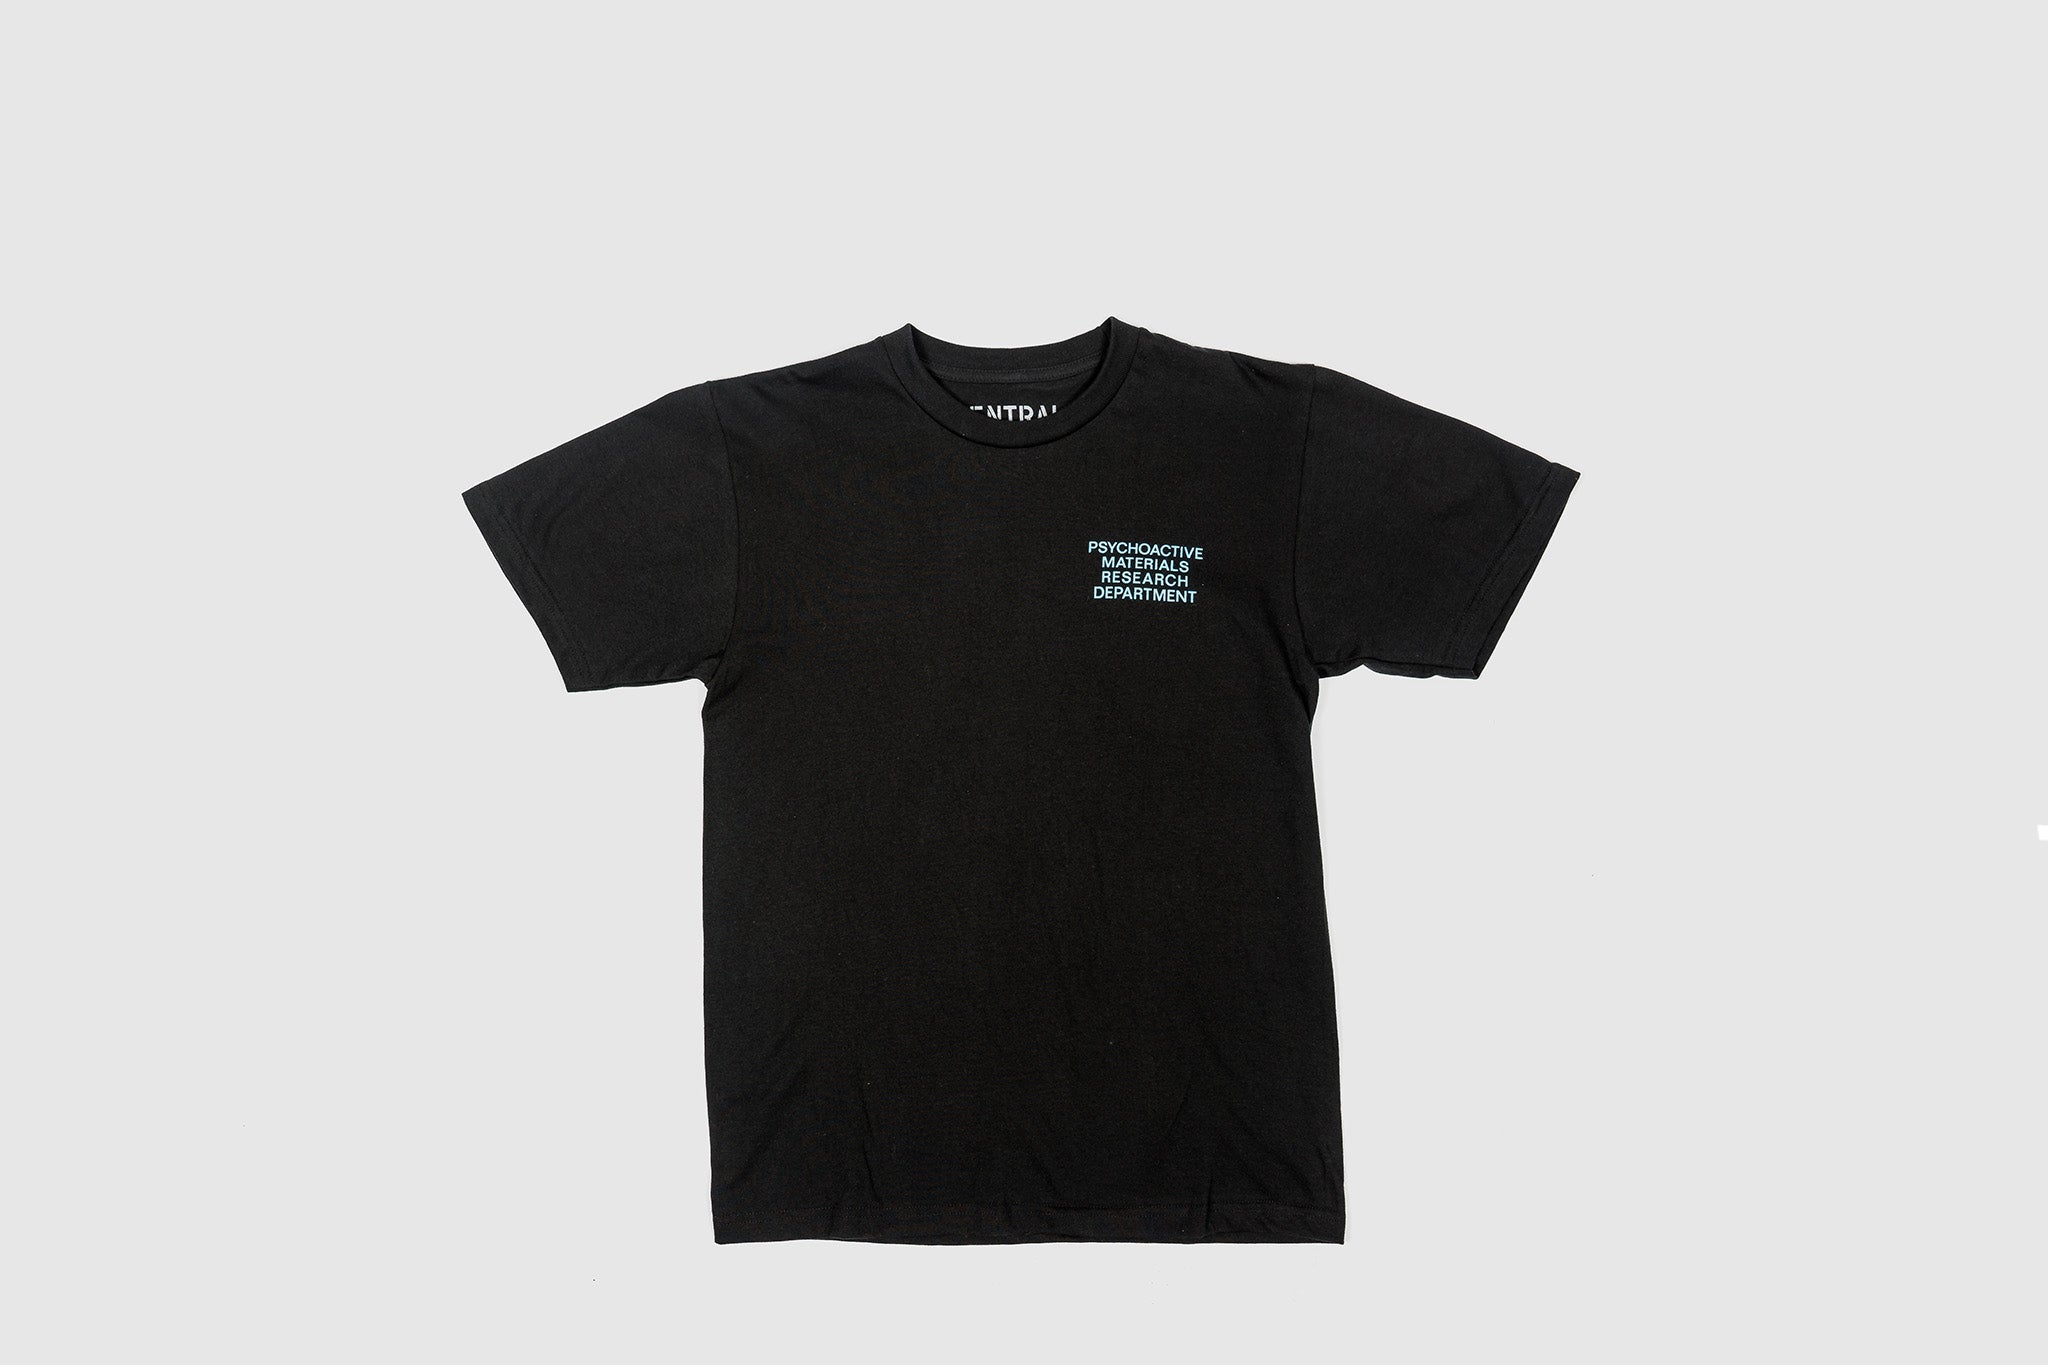 CENTRAL HIGH LABORATORIES S/S T-SHIRT